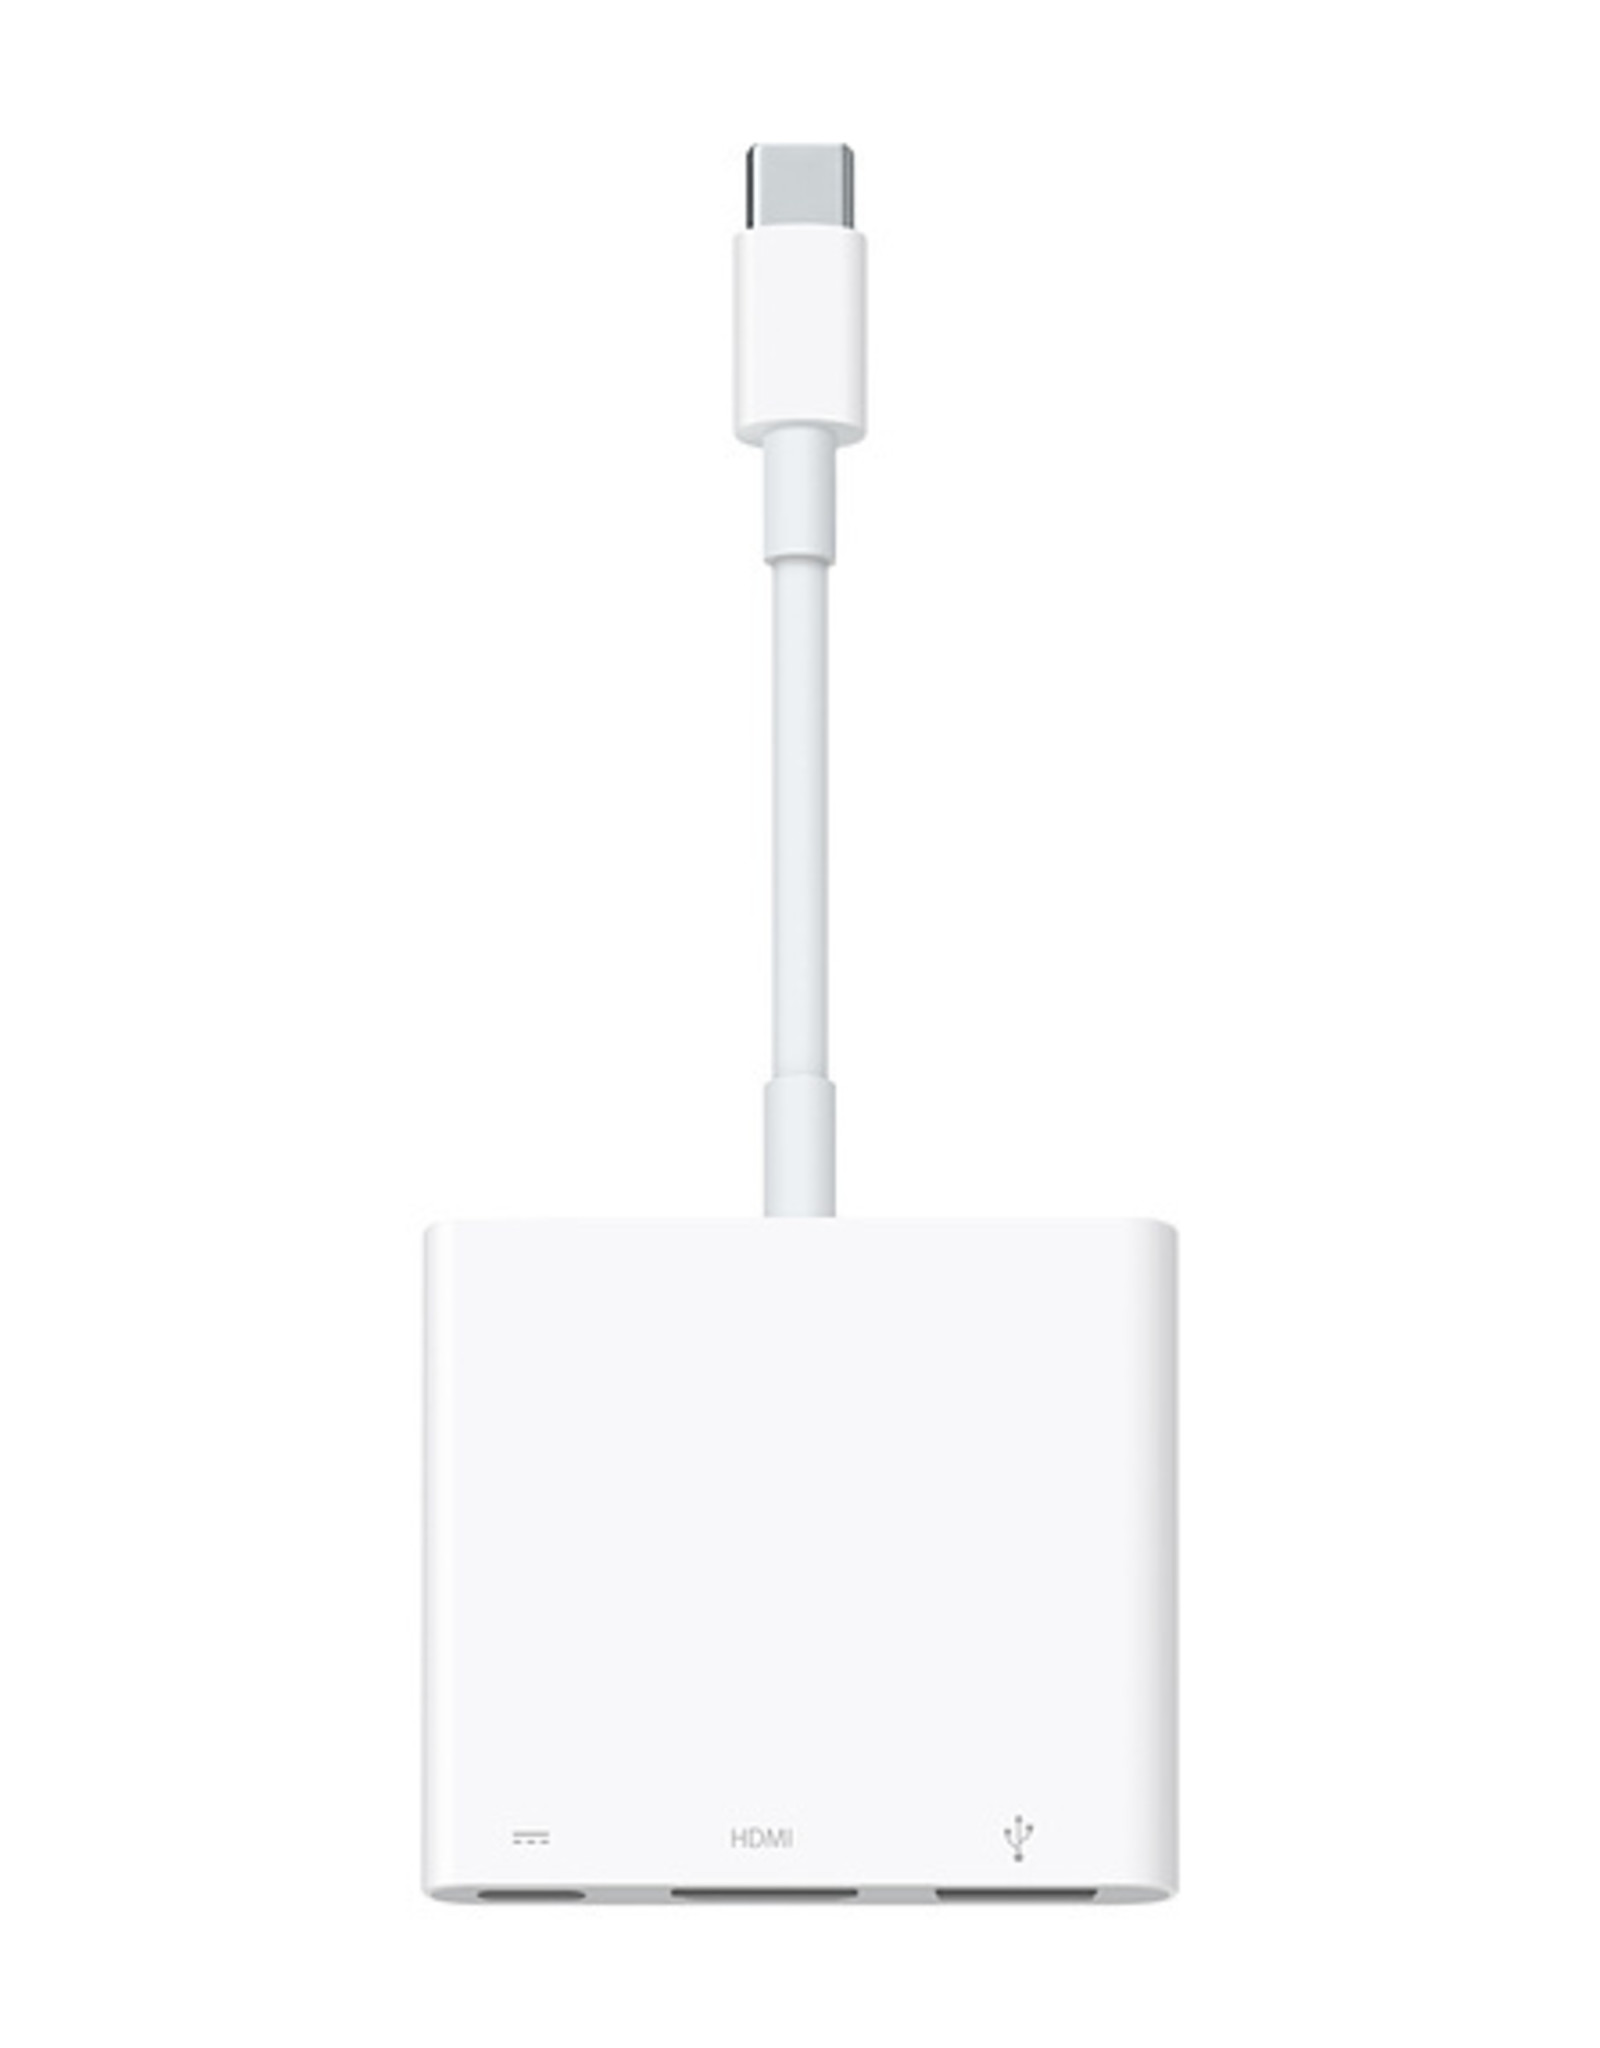 Apple APPLE USB-C DIGITAL AV MULTIPORT ADAPTER (2019 VERSION)